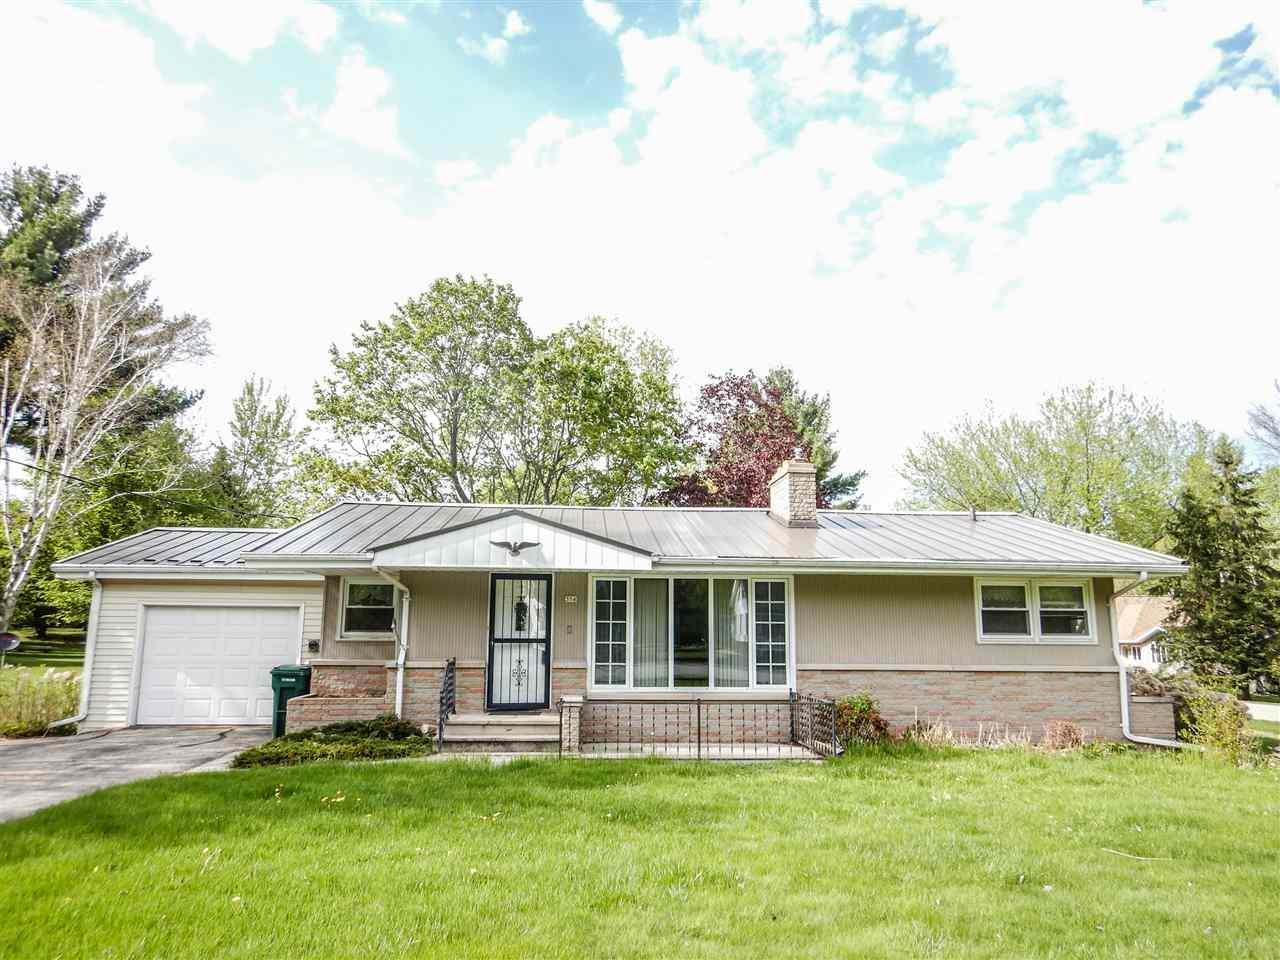 Local Real Estate: Homes for Sale — Coleman, WI — Coldwell Banker